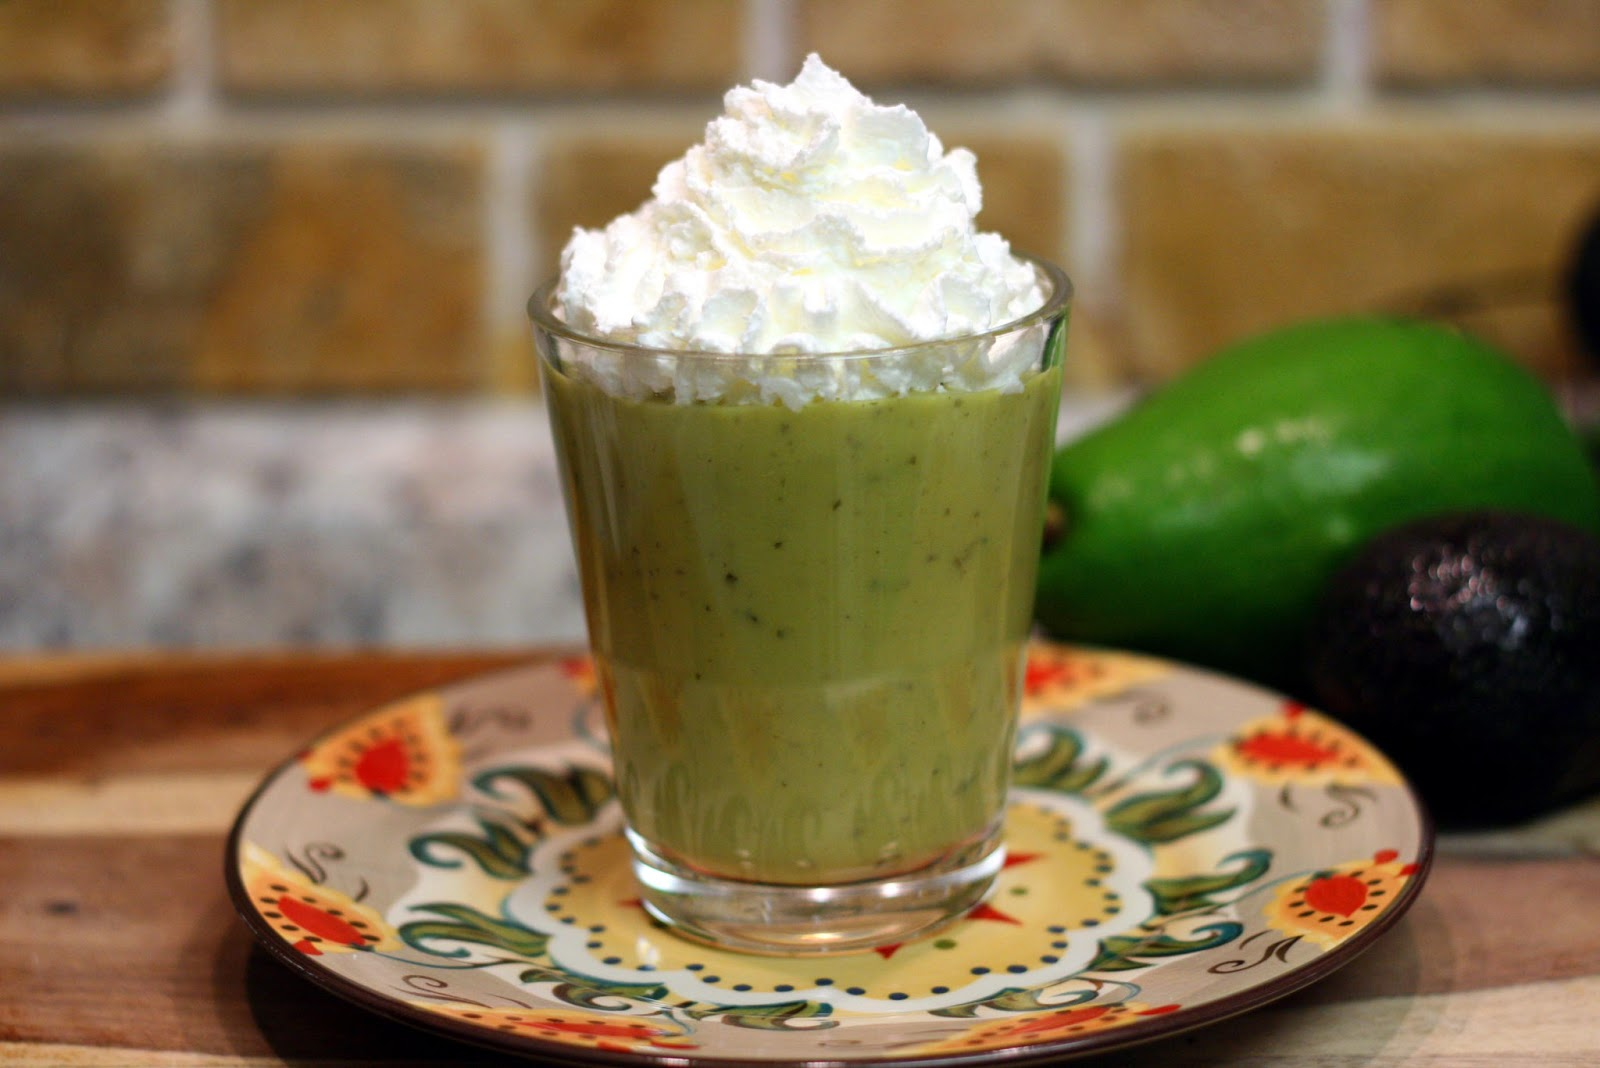 The Tampa Personal Chef Blog: Avocado Dessert Recipes